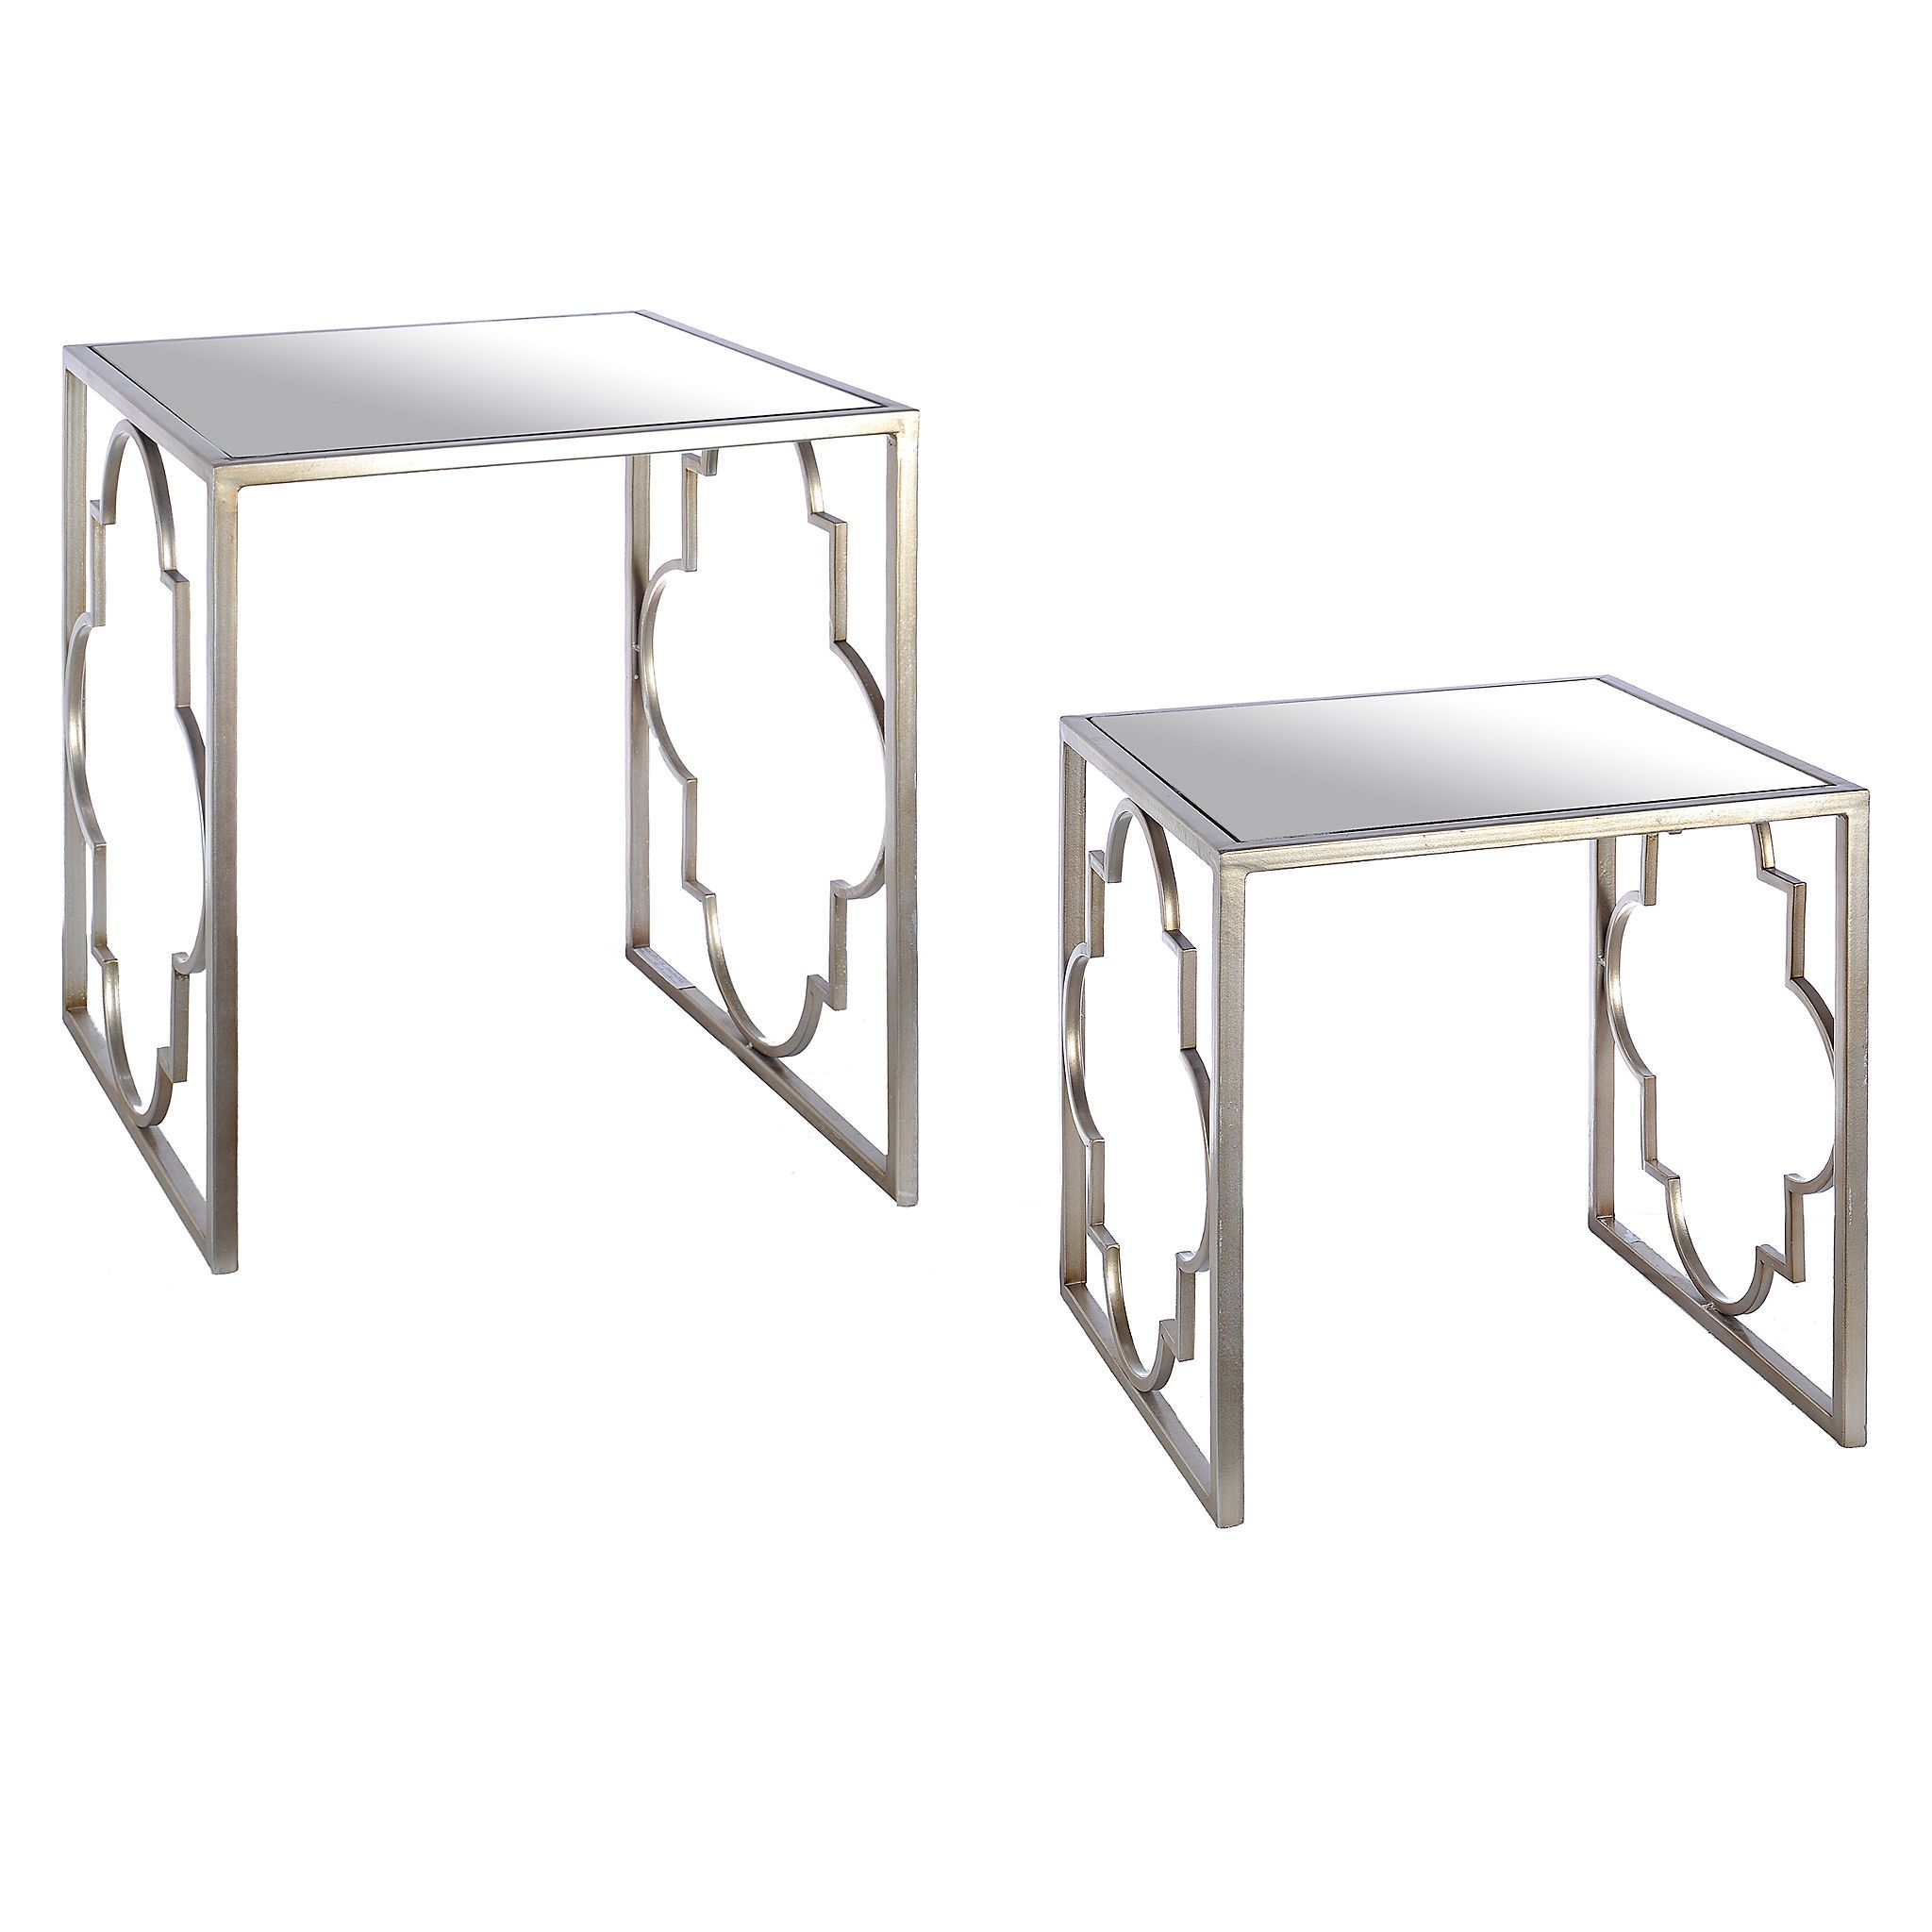 Silver Quatrefoil Nesting Tables Set of 2 Quatrefoil Tabletop